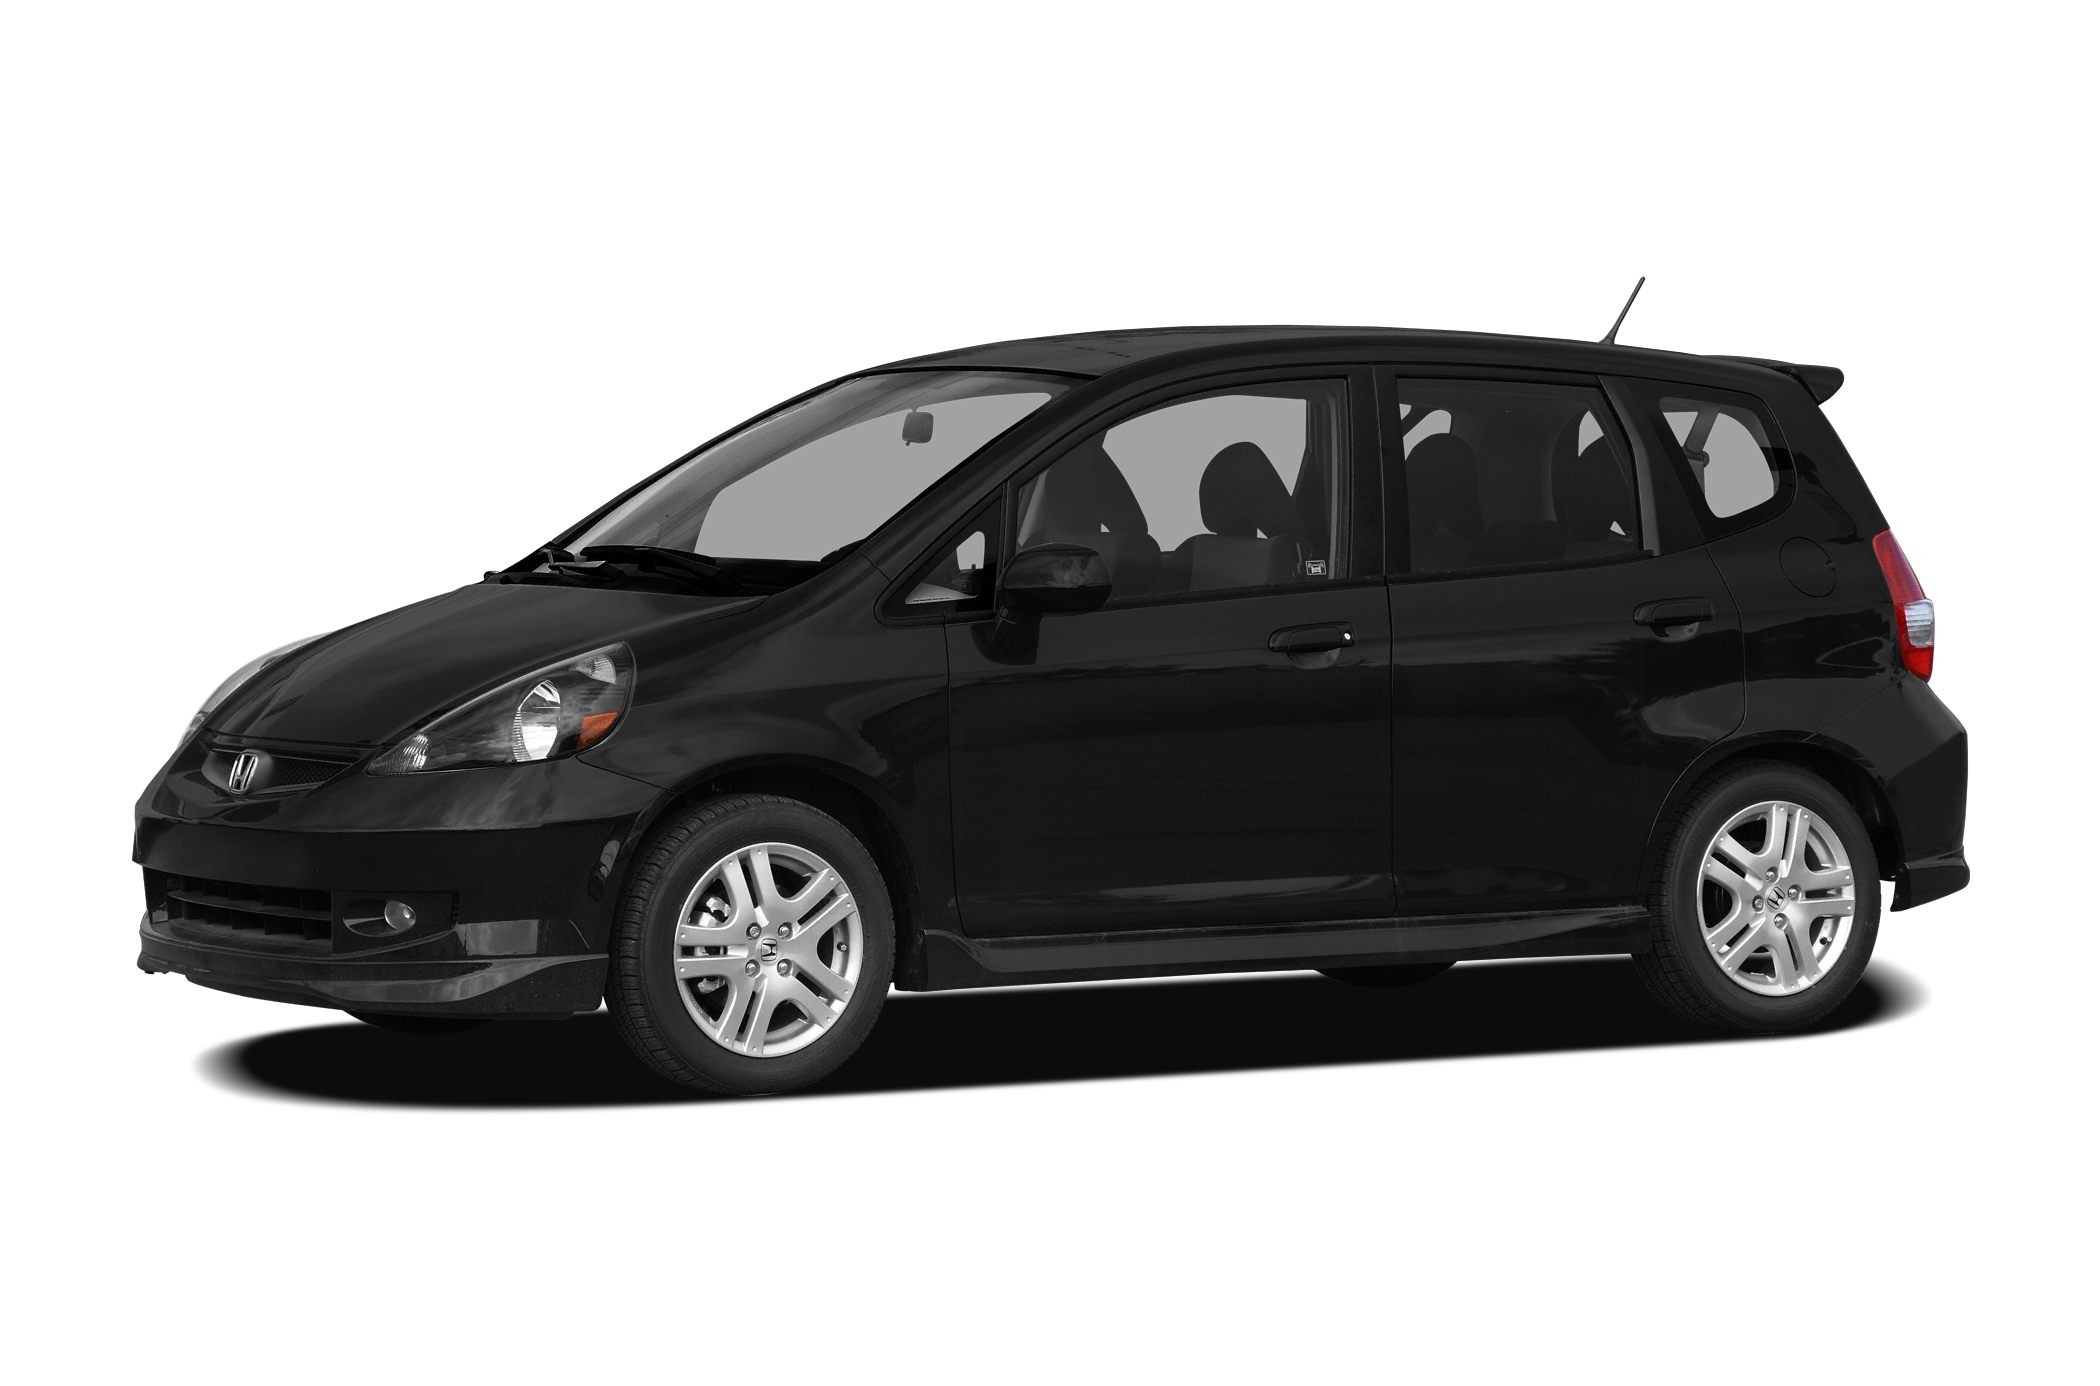 2008 Honda Fit Sport Hatchback for sale in Aiea for $9,988 with 91,307 miles.